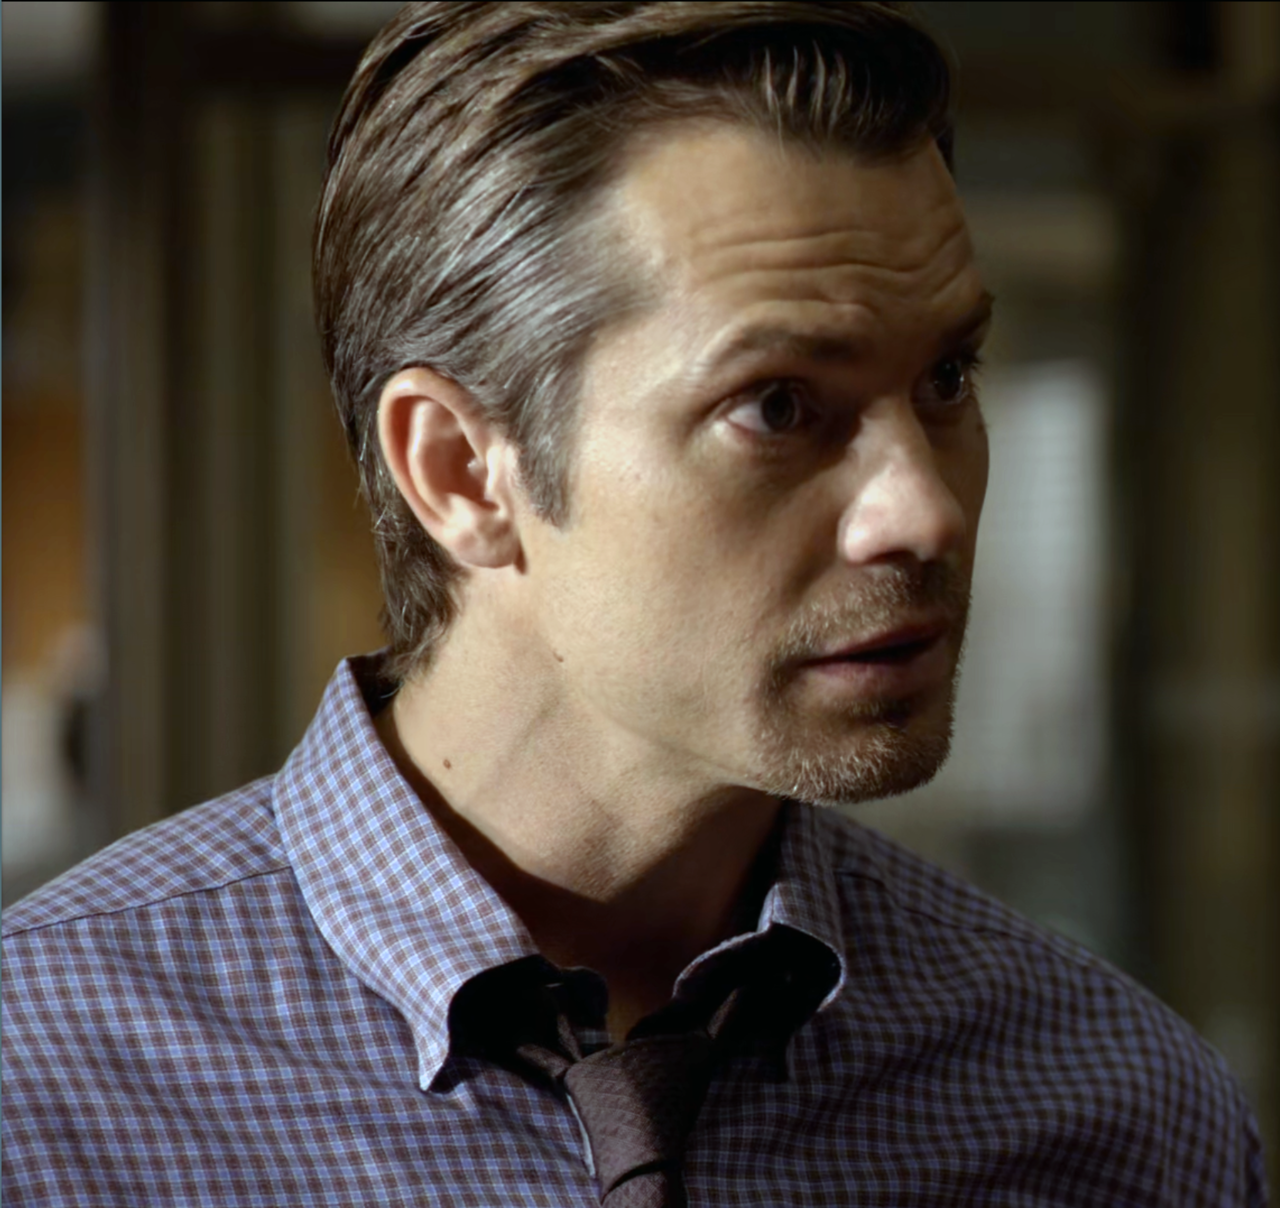 Pin By Sarah Urfer On Lovely People Timothy Olyphant Pinterest